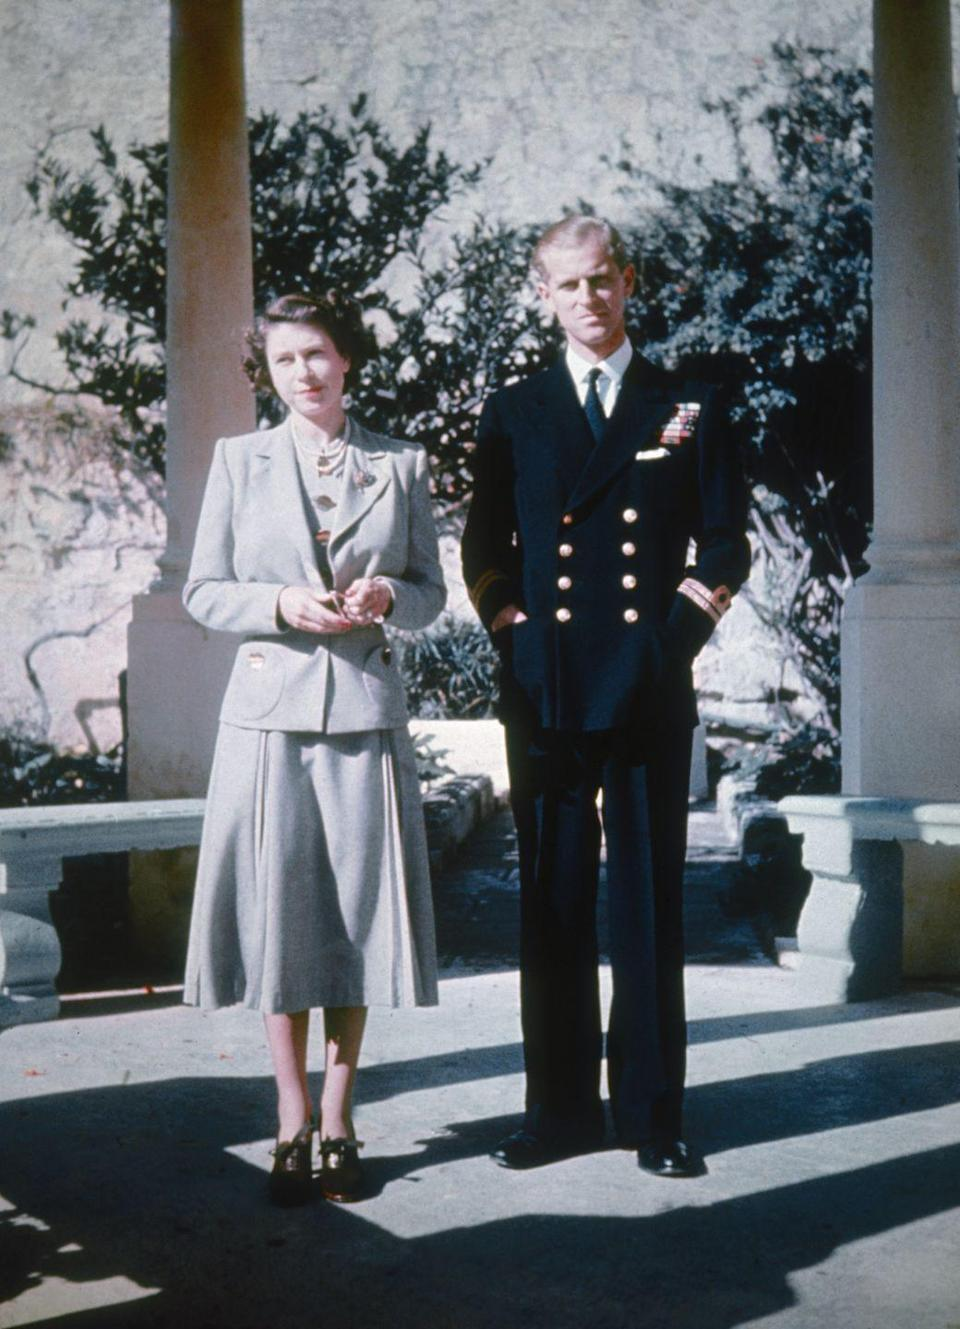 <p>The royal couple initially moved to Clarence House in London, before the Royal Navy stationed Philip in Malta, Greece, in 1949. His active naval career lasted until 1951. It was time to take on royal duties. <br></p>